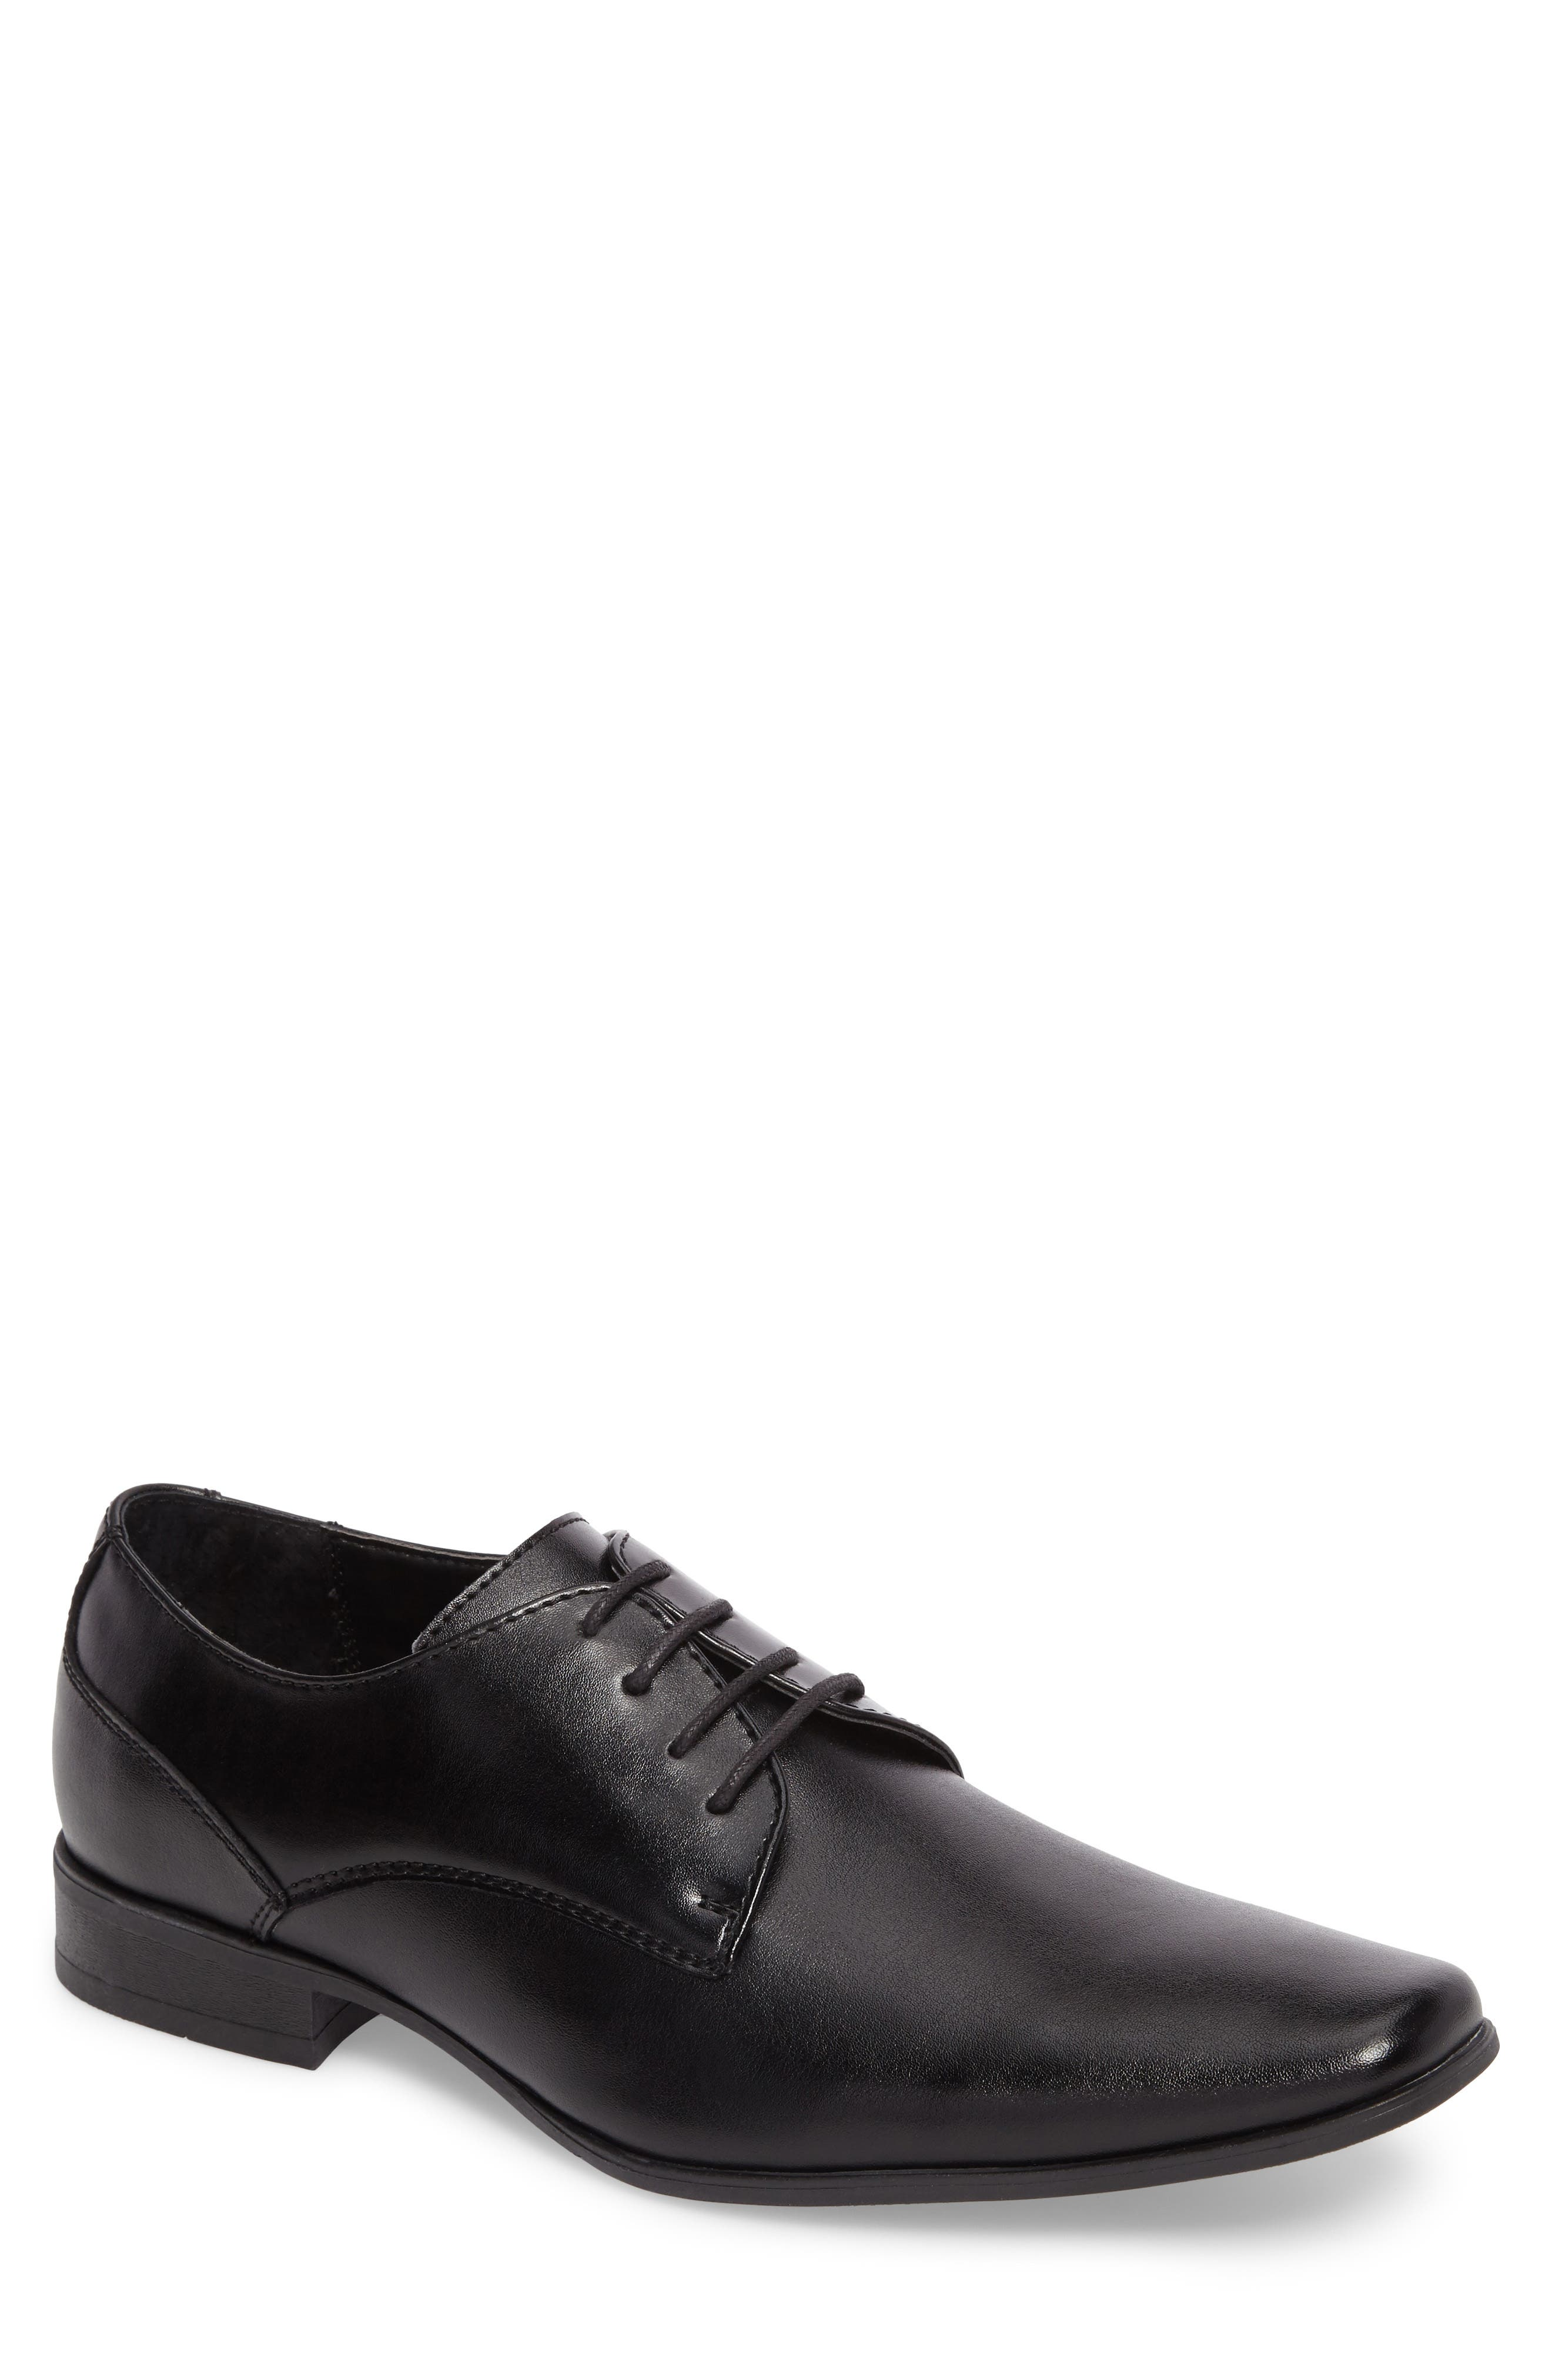 Alternate Image 1 Selected - Calvin Klein Brodie Plain Toe Derby (Men)